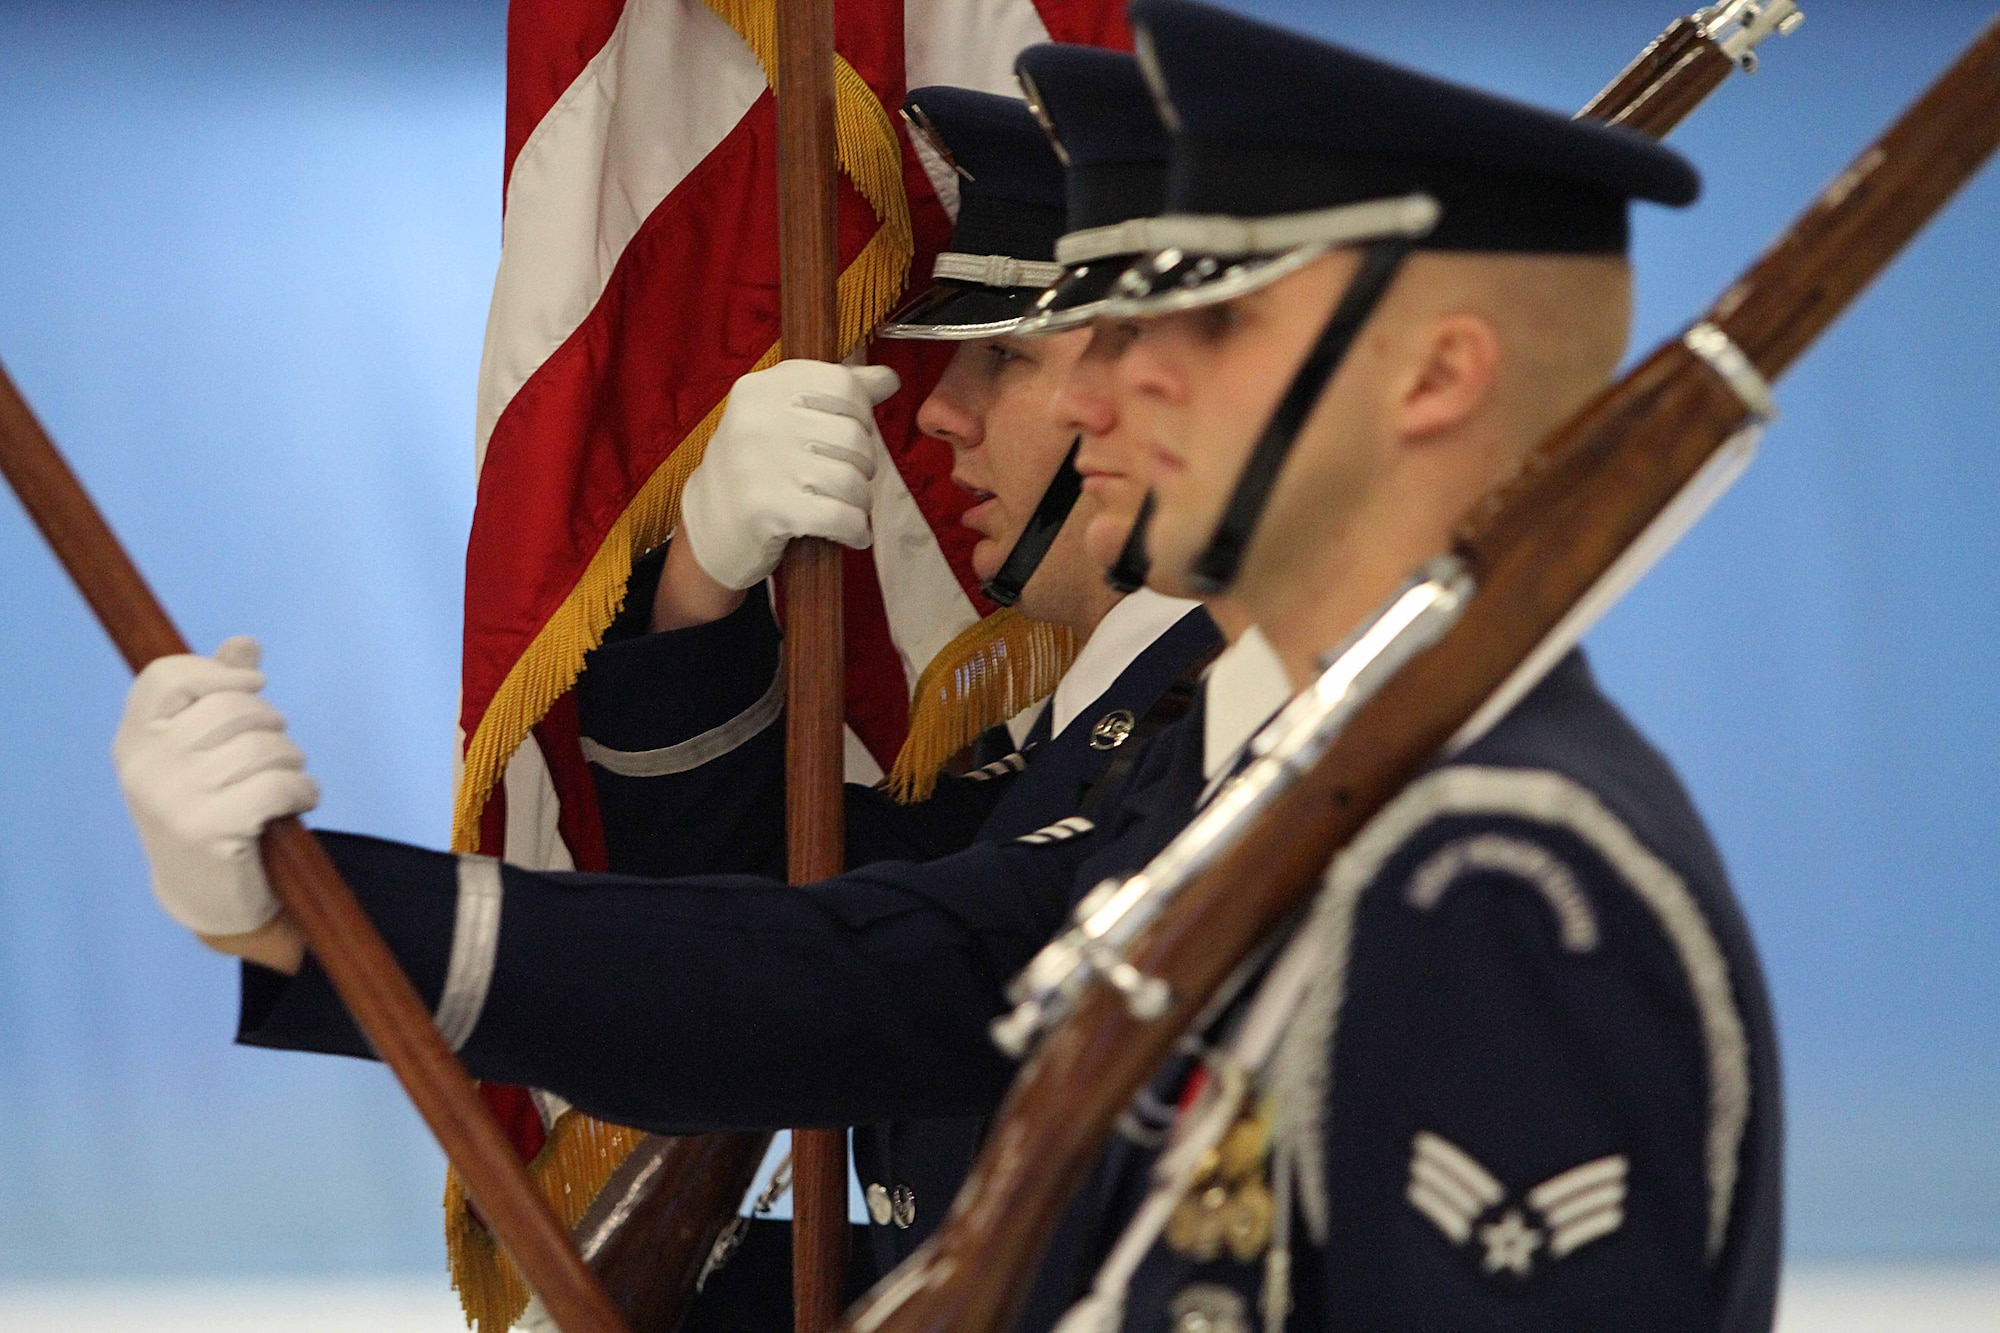 Senior Airman Anthony Wagner calls commands during a dress rehearsal for the Inaugural Parade at Joint Base Andrews, Md., Jan. 11, 2013. Airman Wagner is the the NCO in charge of the Air Force Honor Guard color team. (DOD photo/Claudette Roulo)